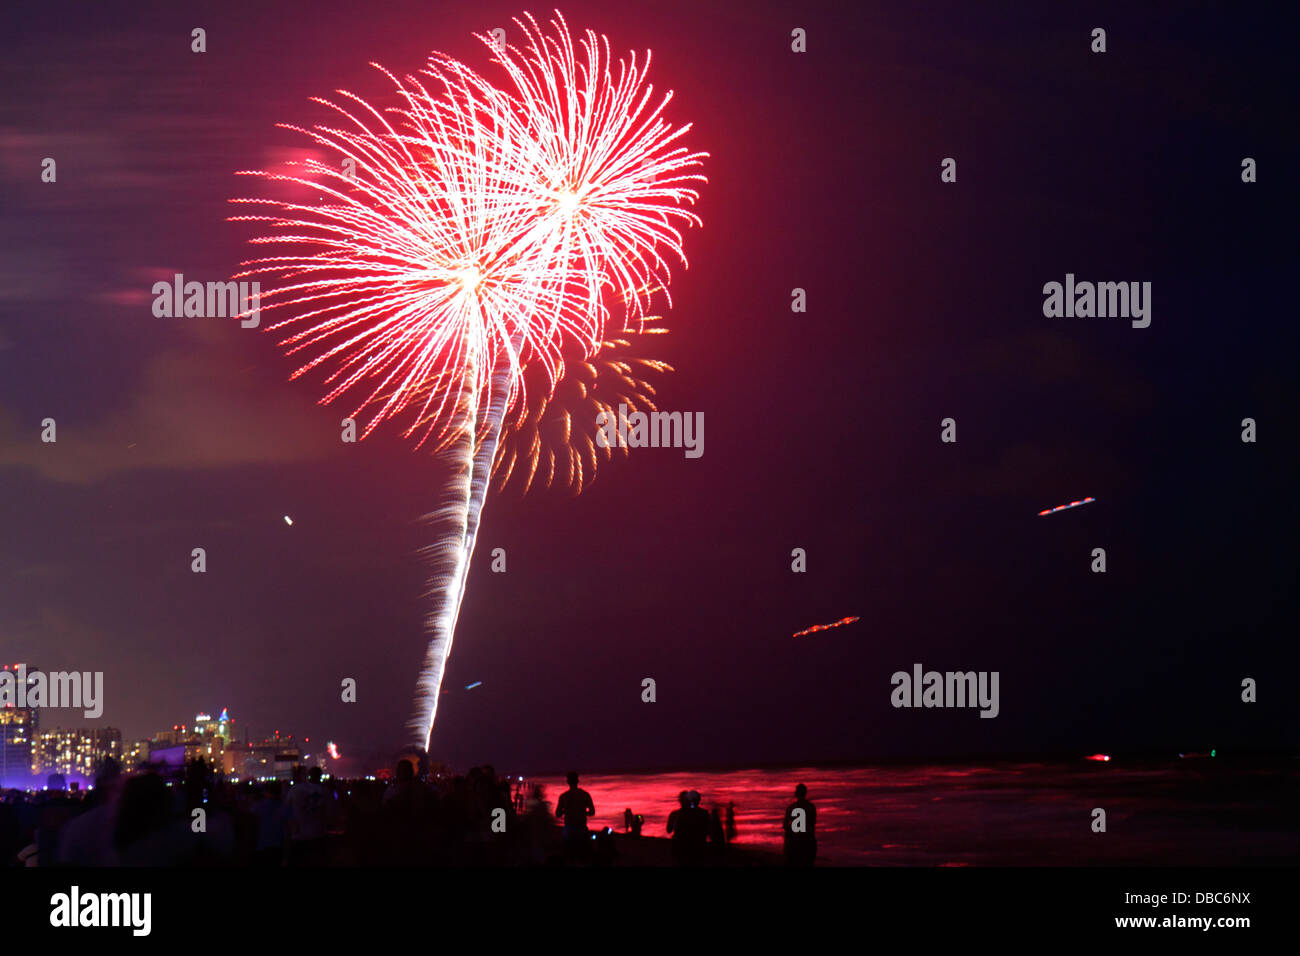 Miami Beach Florida Fourth 4th of July fireworks display celebration public event burst night Atlantic Ocean shoreline - Stock Image